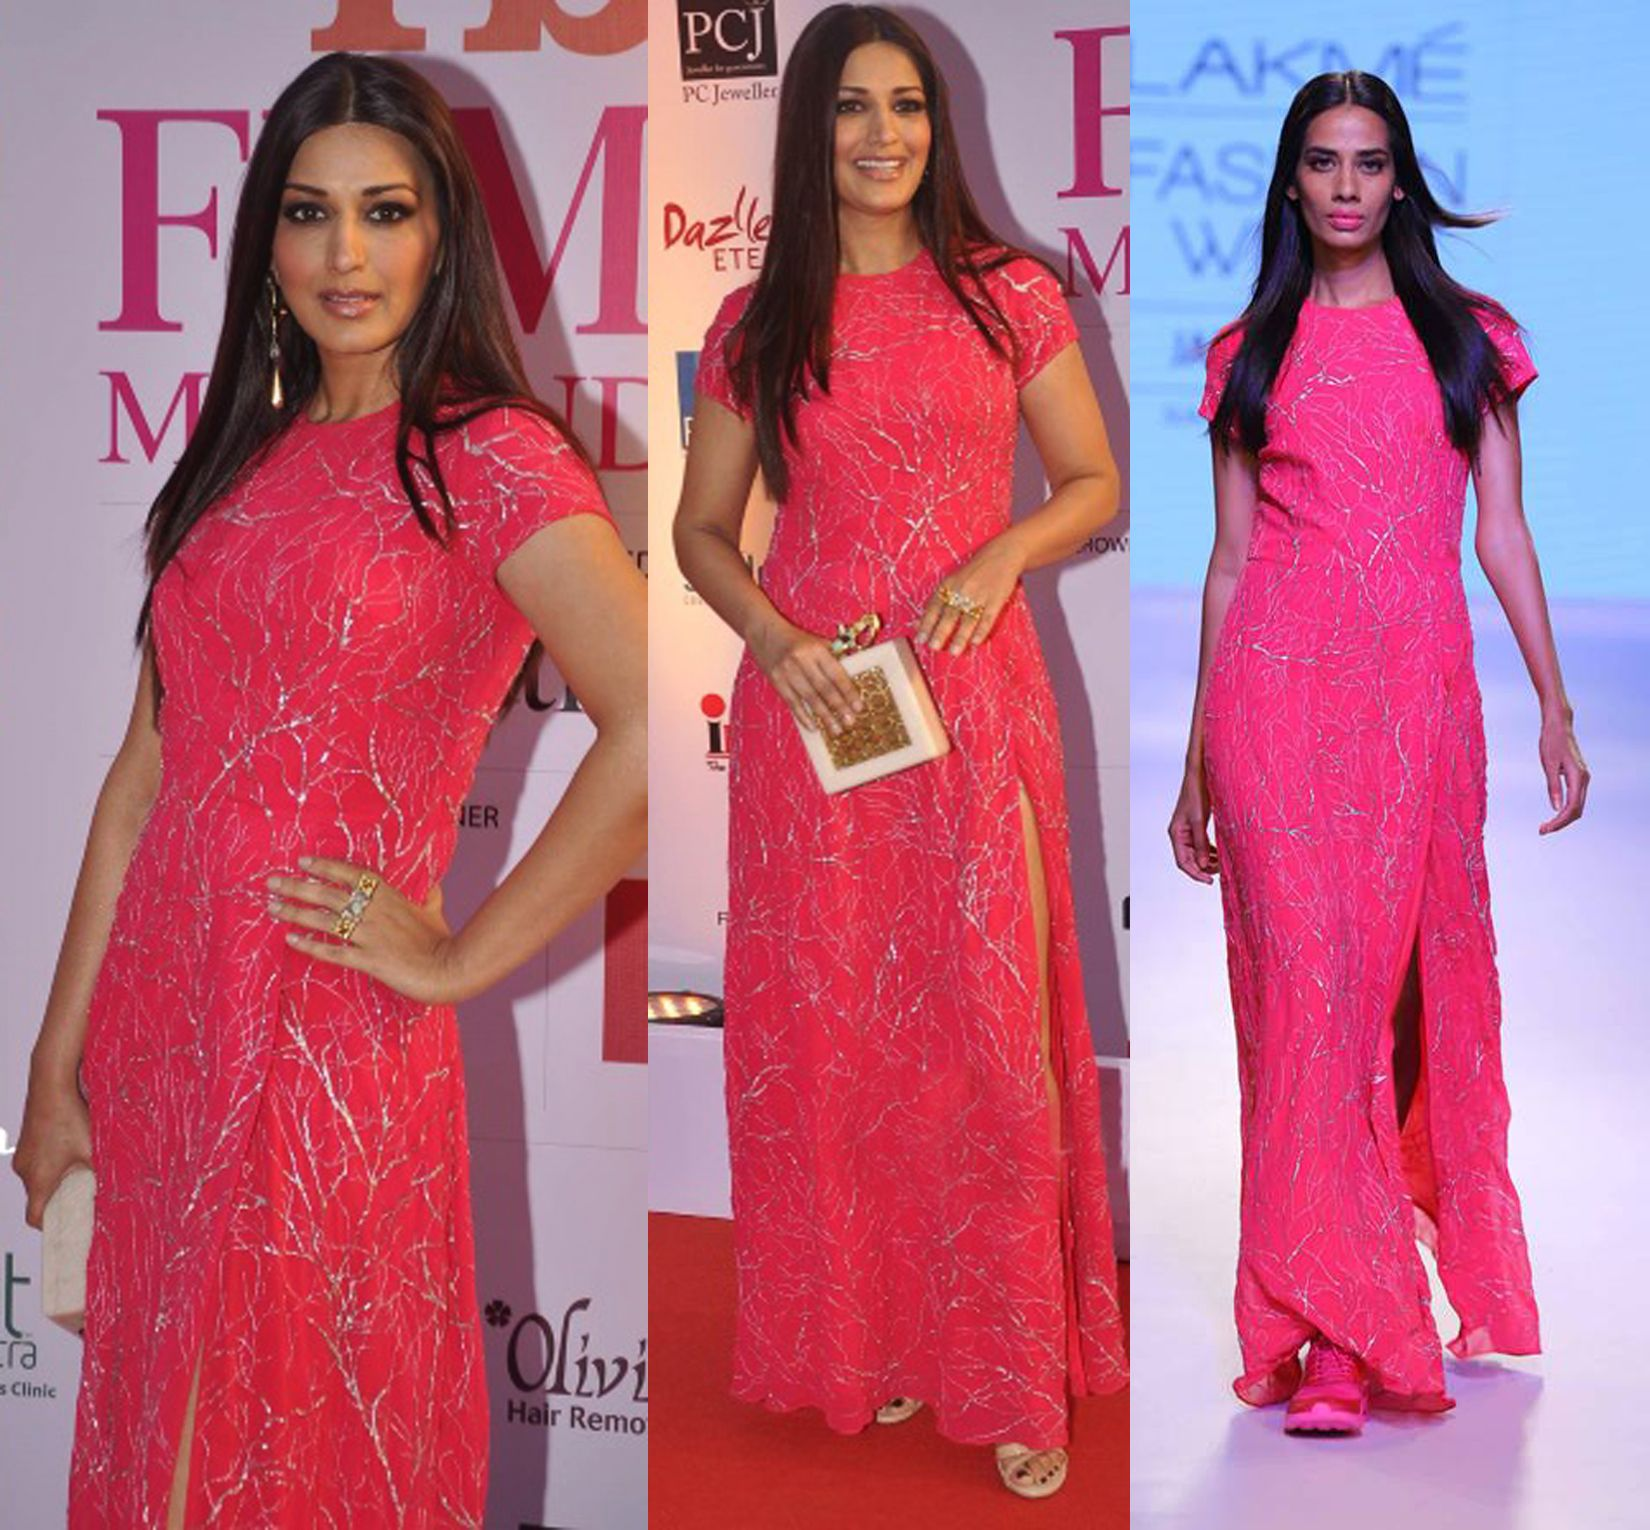 GET THIS LOOK- Sonali Bendre looks pretty and elegant in an outfit by Huemn. Shop now: http://www.perniaspopupshop.com/designers/huemn #celebritystyle #huemn #gown #elegant #perniaspopupshop #shopnow #happyshopping